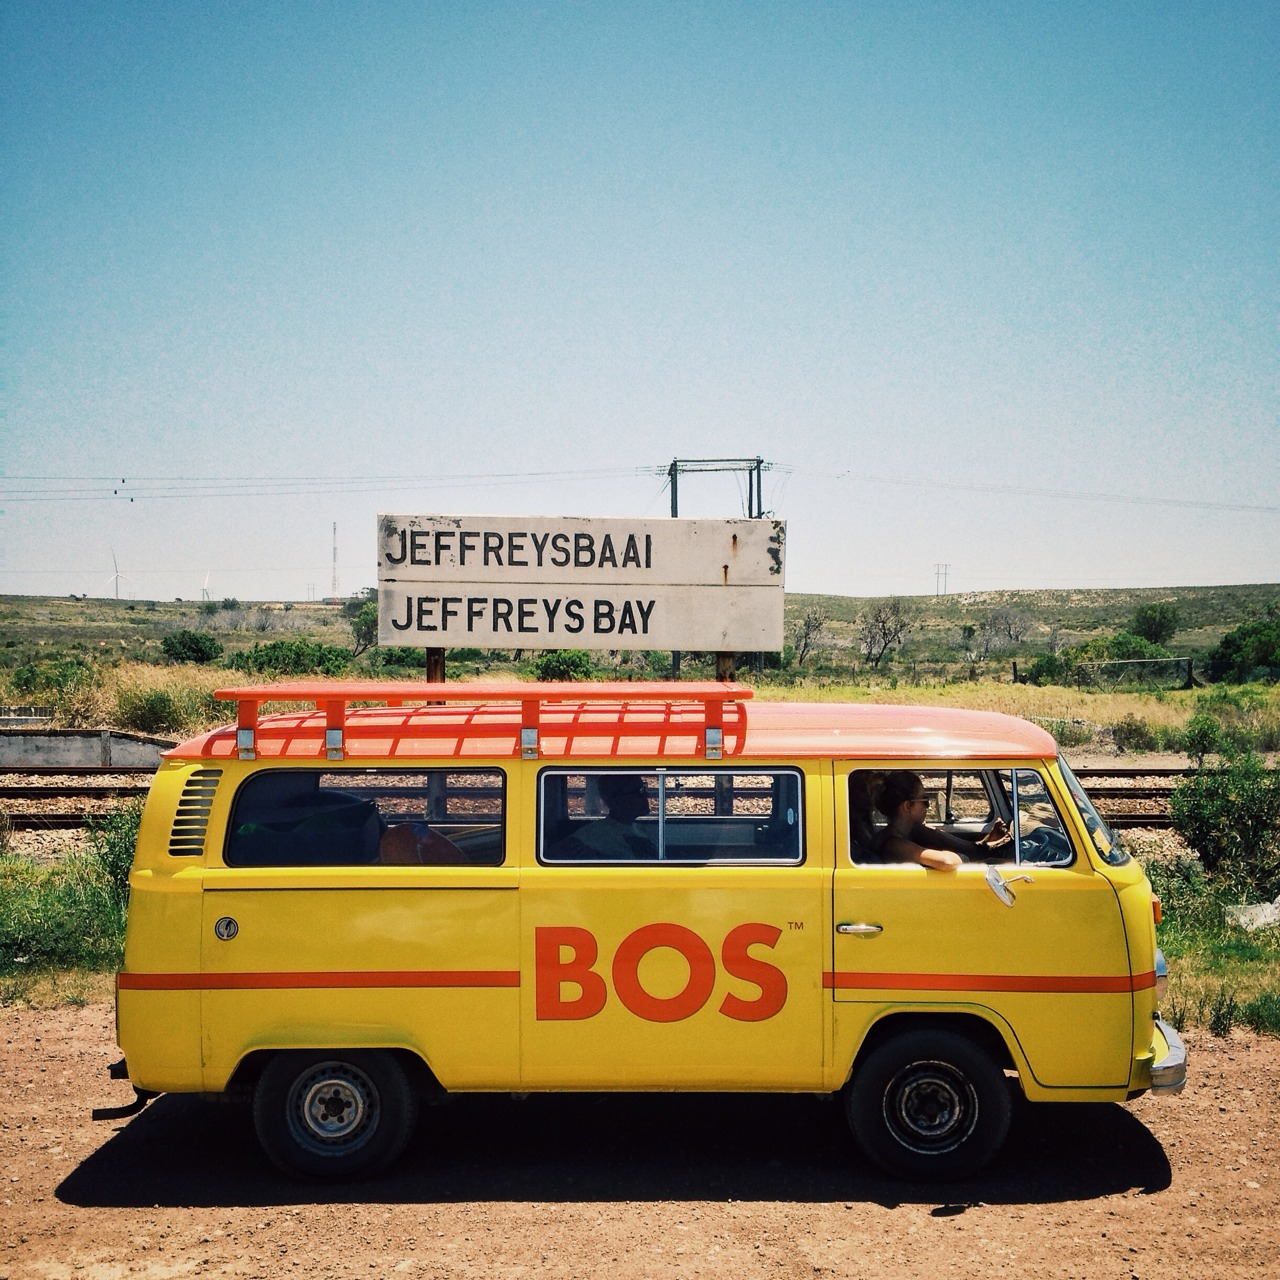 @BOS Summer of Love Tour is nearing an end - it's been epic! 4 days left, so expect some cool shots || #SummerGoesBOS || Keep an eye out for us in PE, Pollock, Kenton on Sea, Sardina Bay, Port Alfred and one last stop Sedgefield 😁